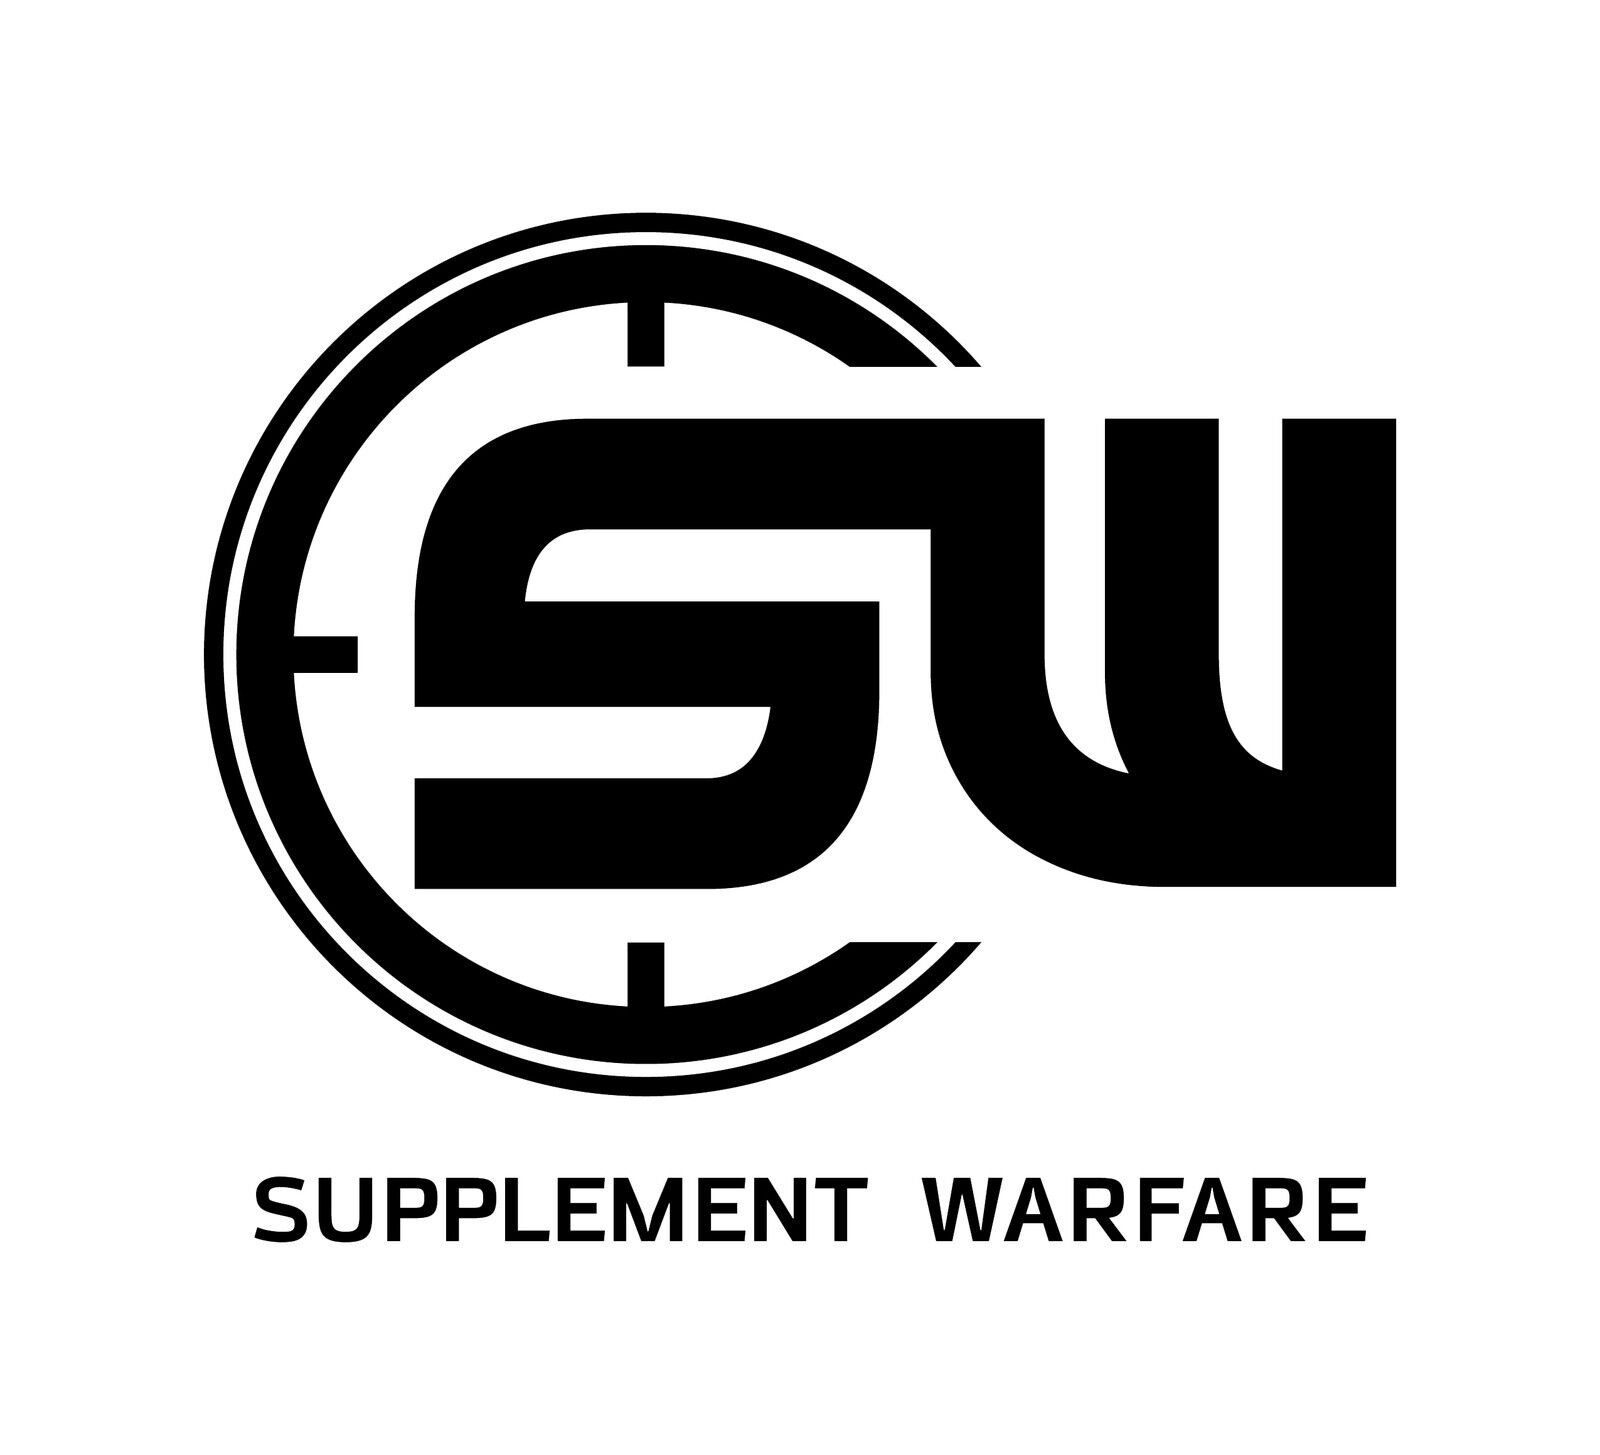 Supplement Warfare